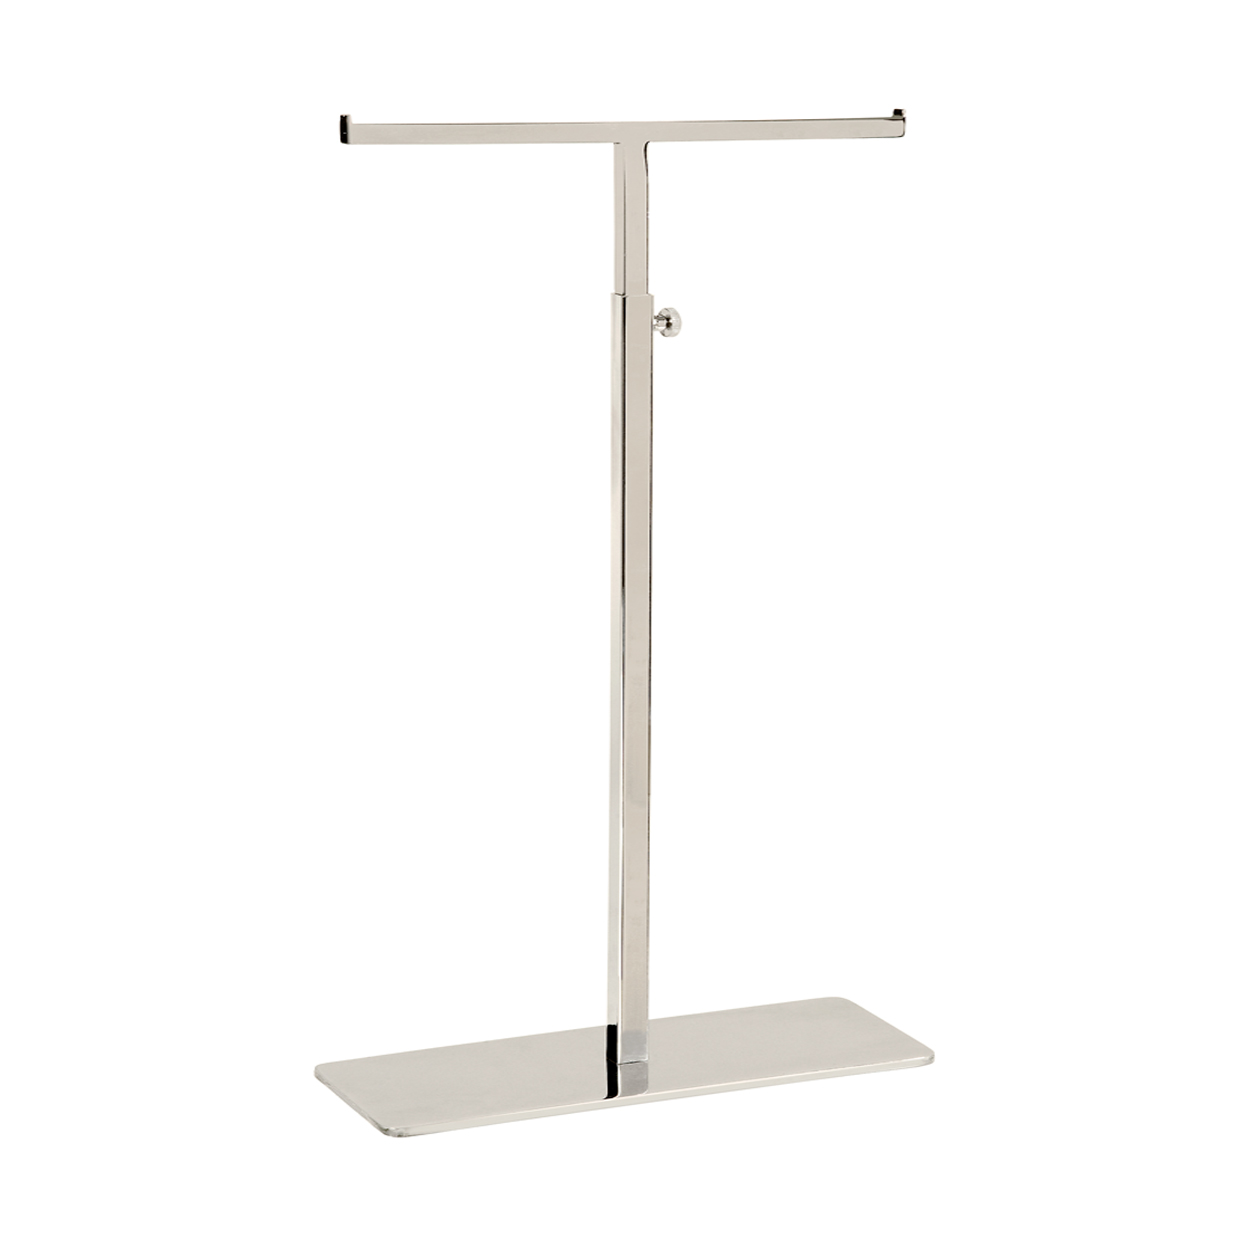 Large Standard Double Sided Handbag Display Stand With Solid Base and adjustable height.